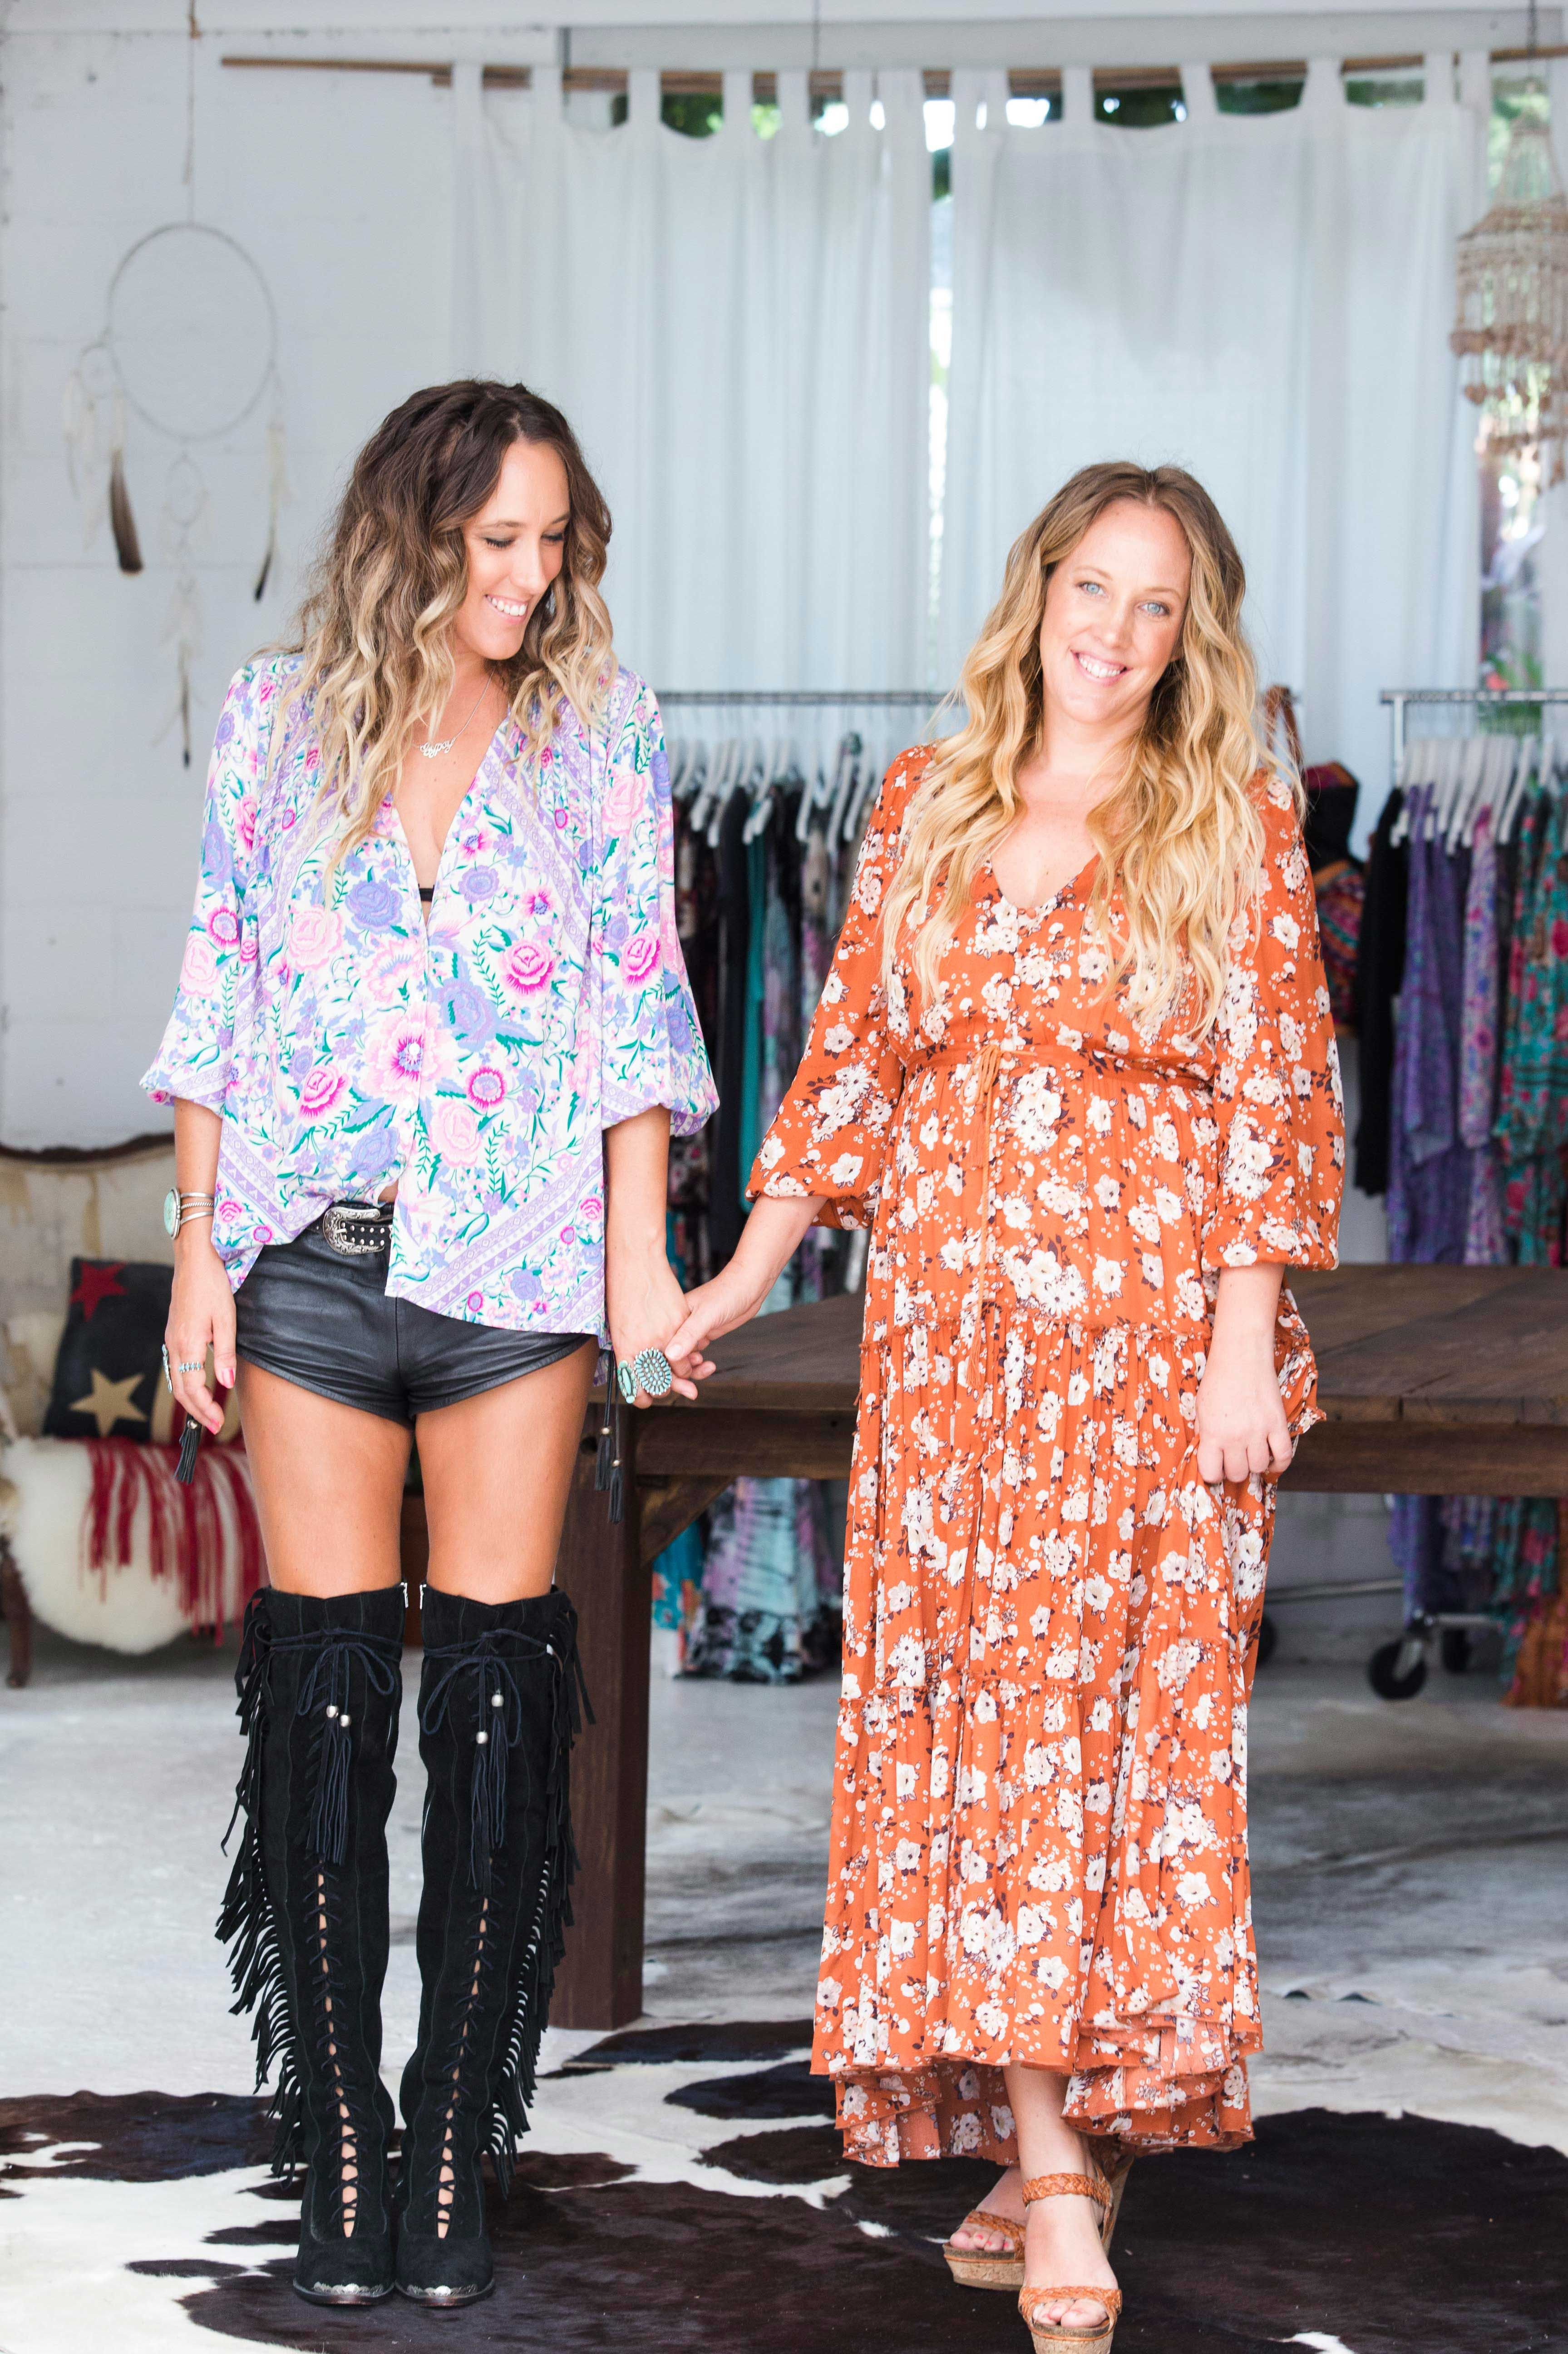 7a36c8487c8 At home in Byron Bay with the talented sisters behind modern-bohemian  fashion brand Spell & The Gypsy Collective talking style, motherhood and  more.